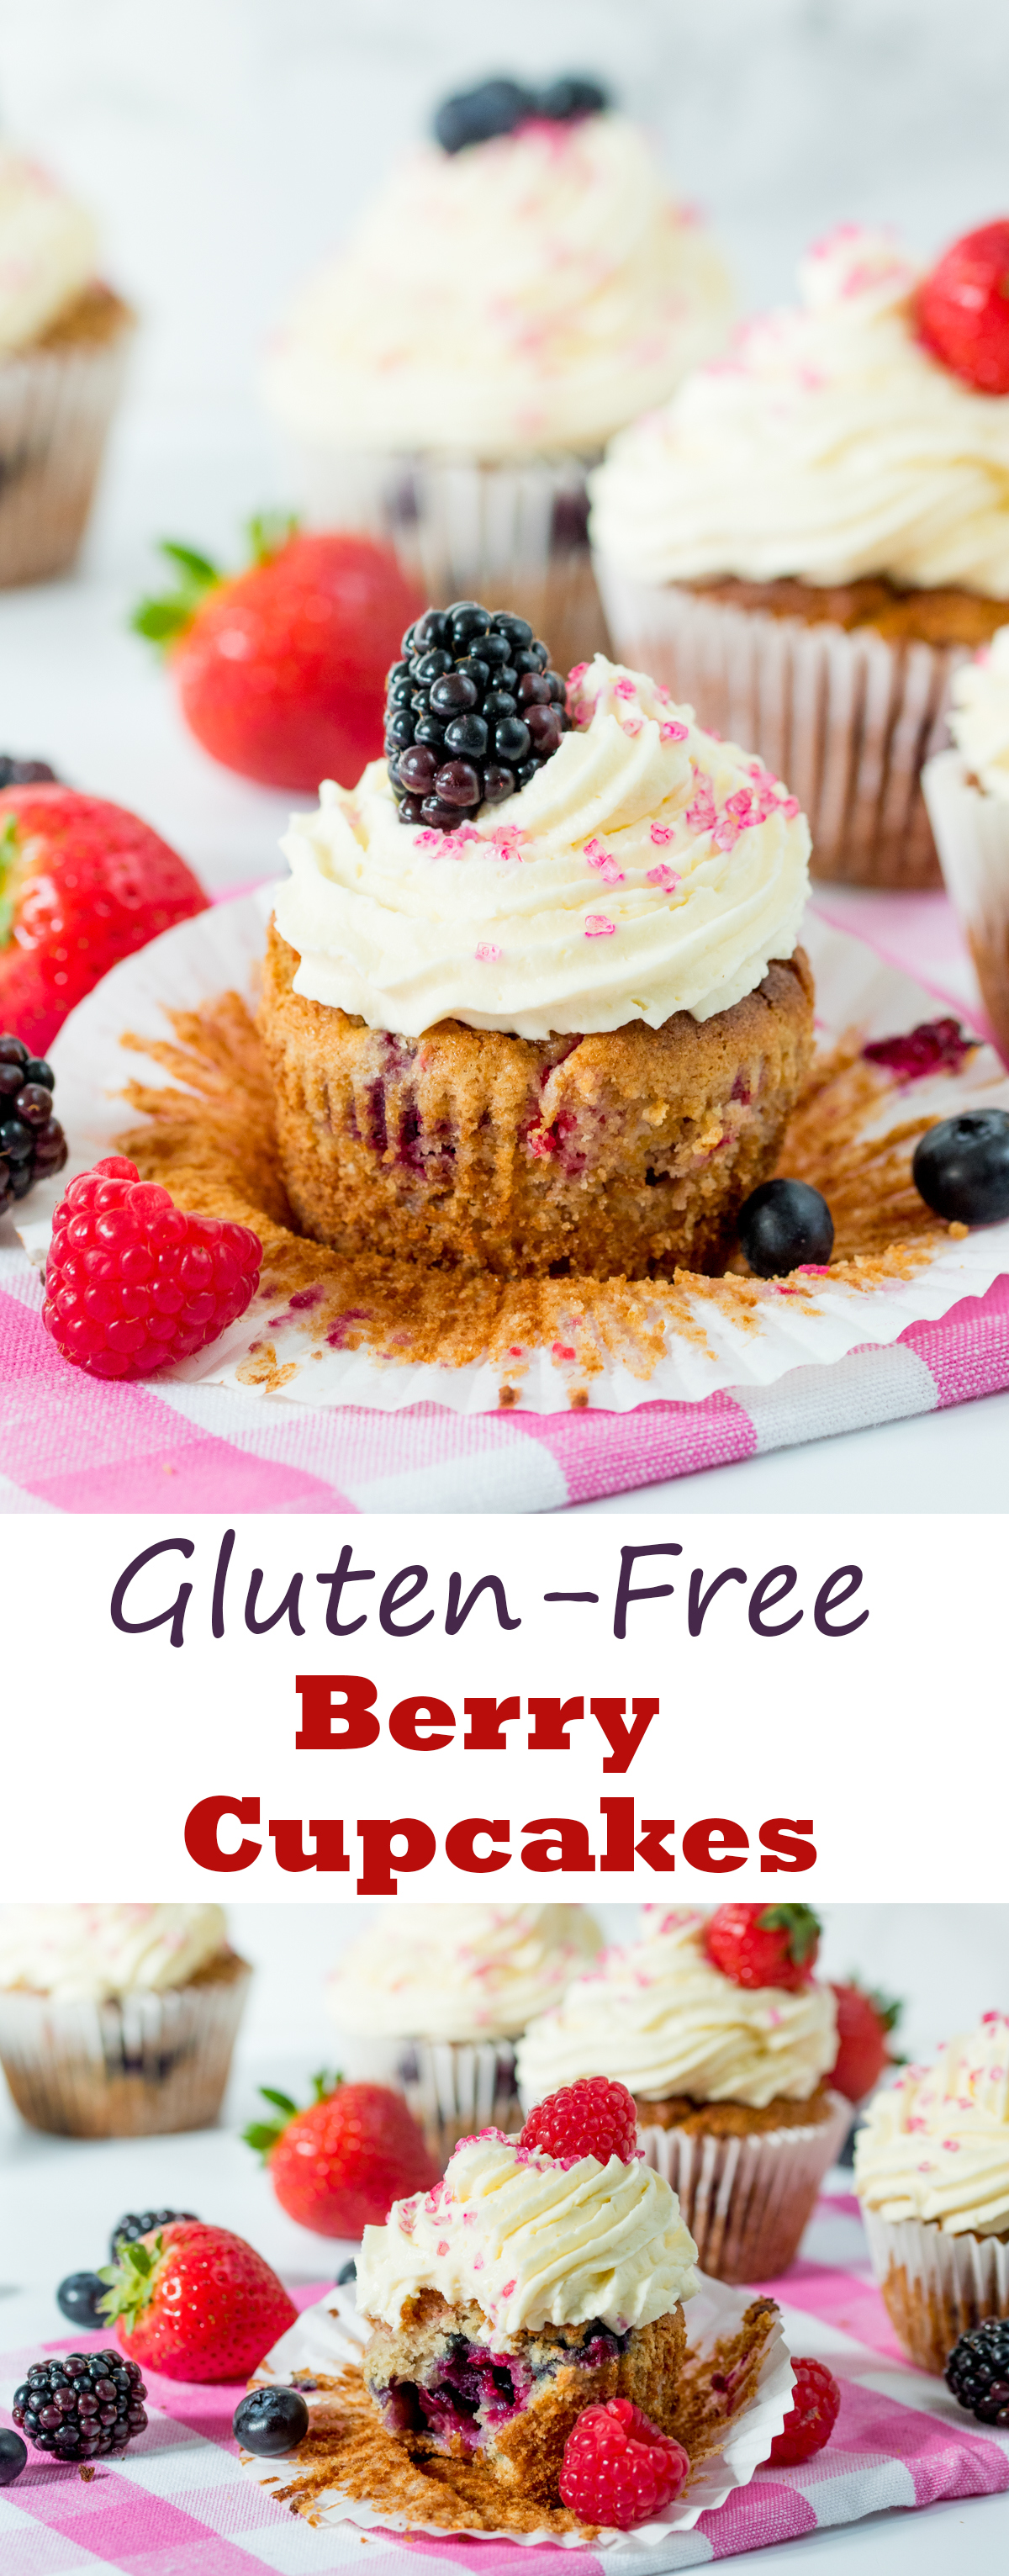 Gluten Free Berry Cream Cupcakes - Light and fluffy cupcakes, packed with fresh berries and topped with cheesecake cream!